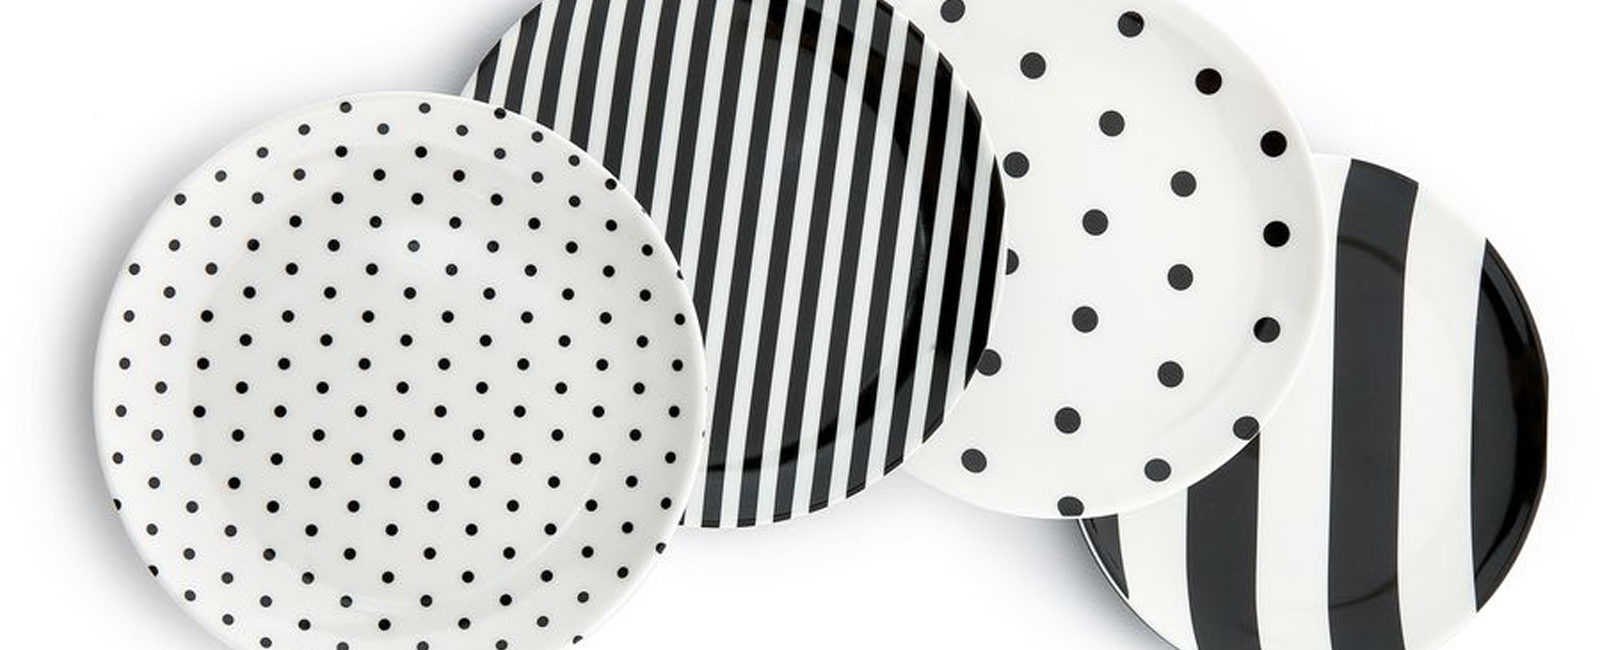 We never get tired of polka dots